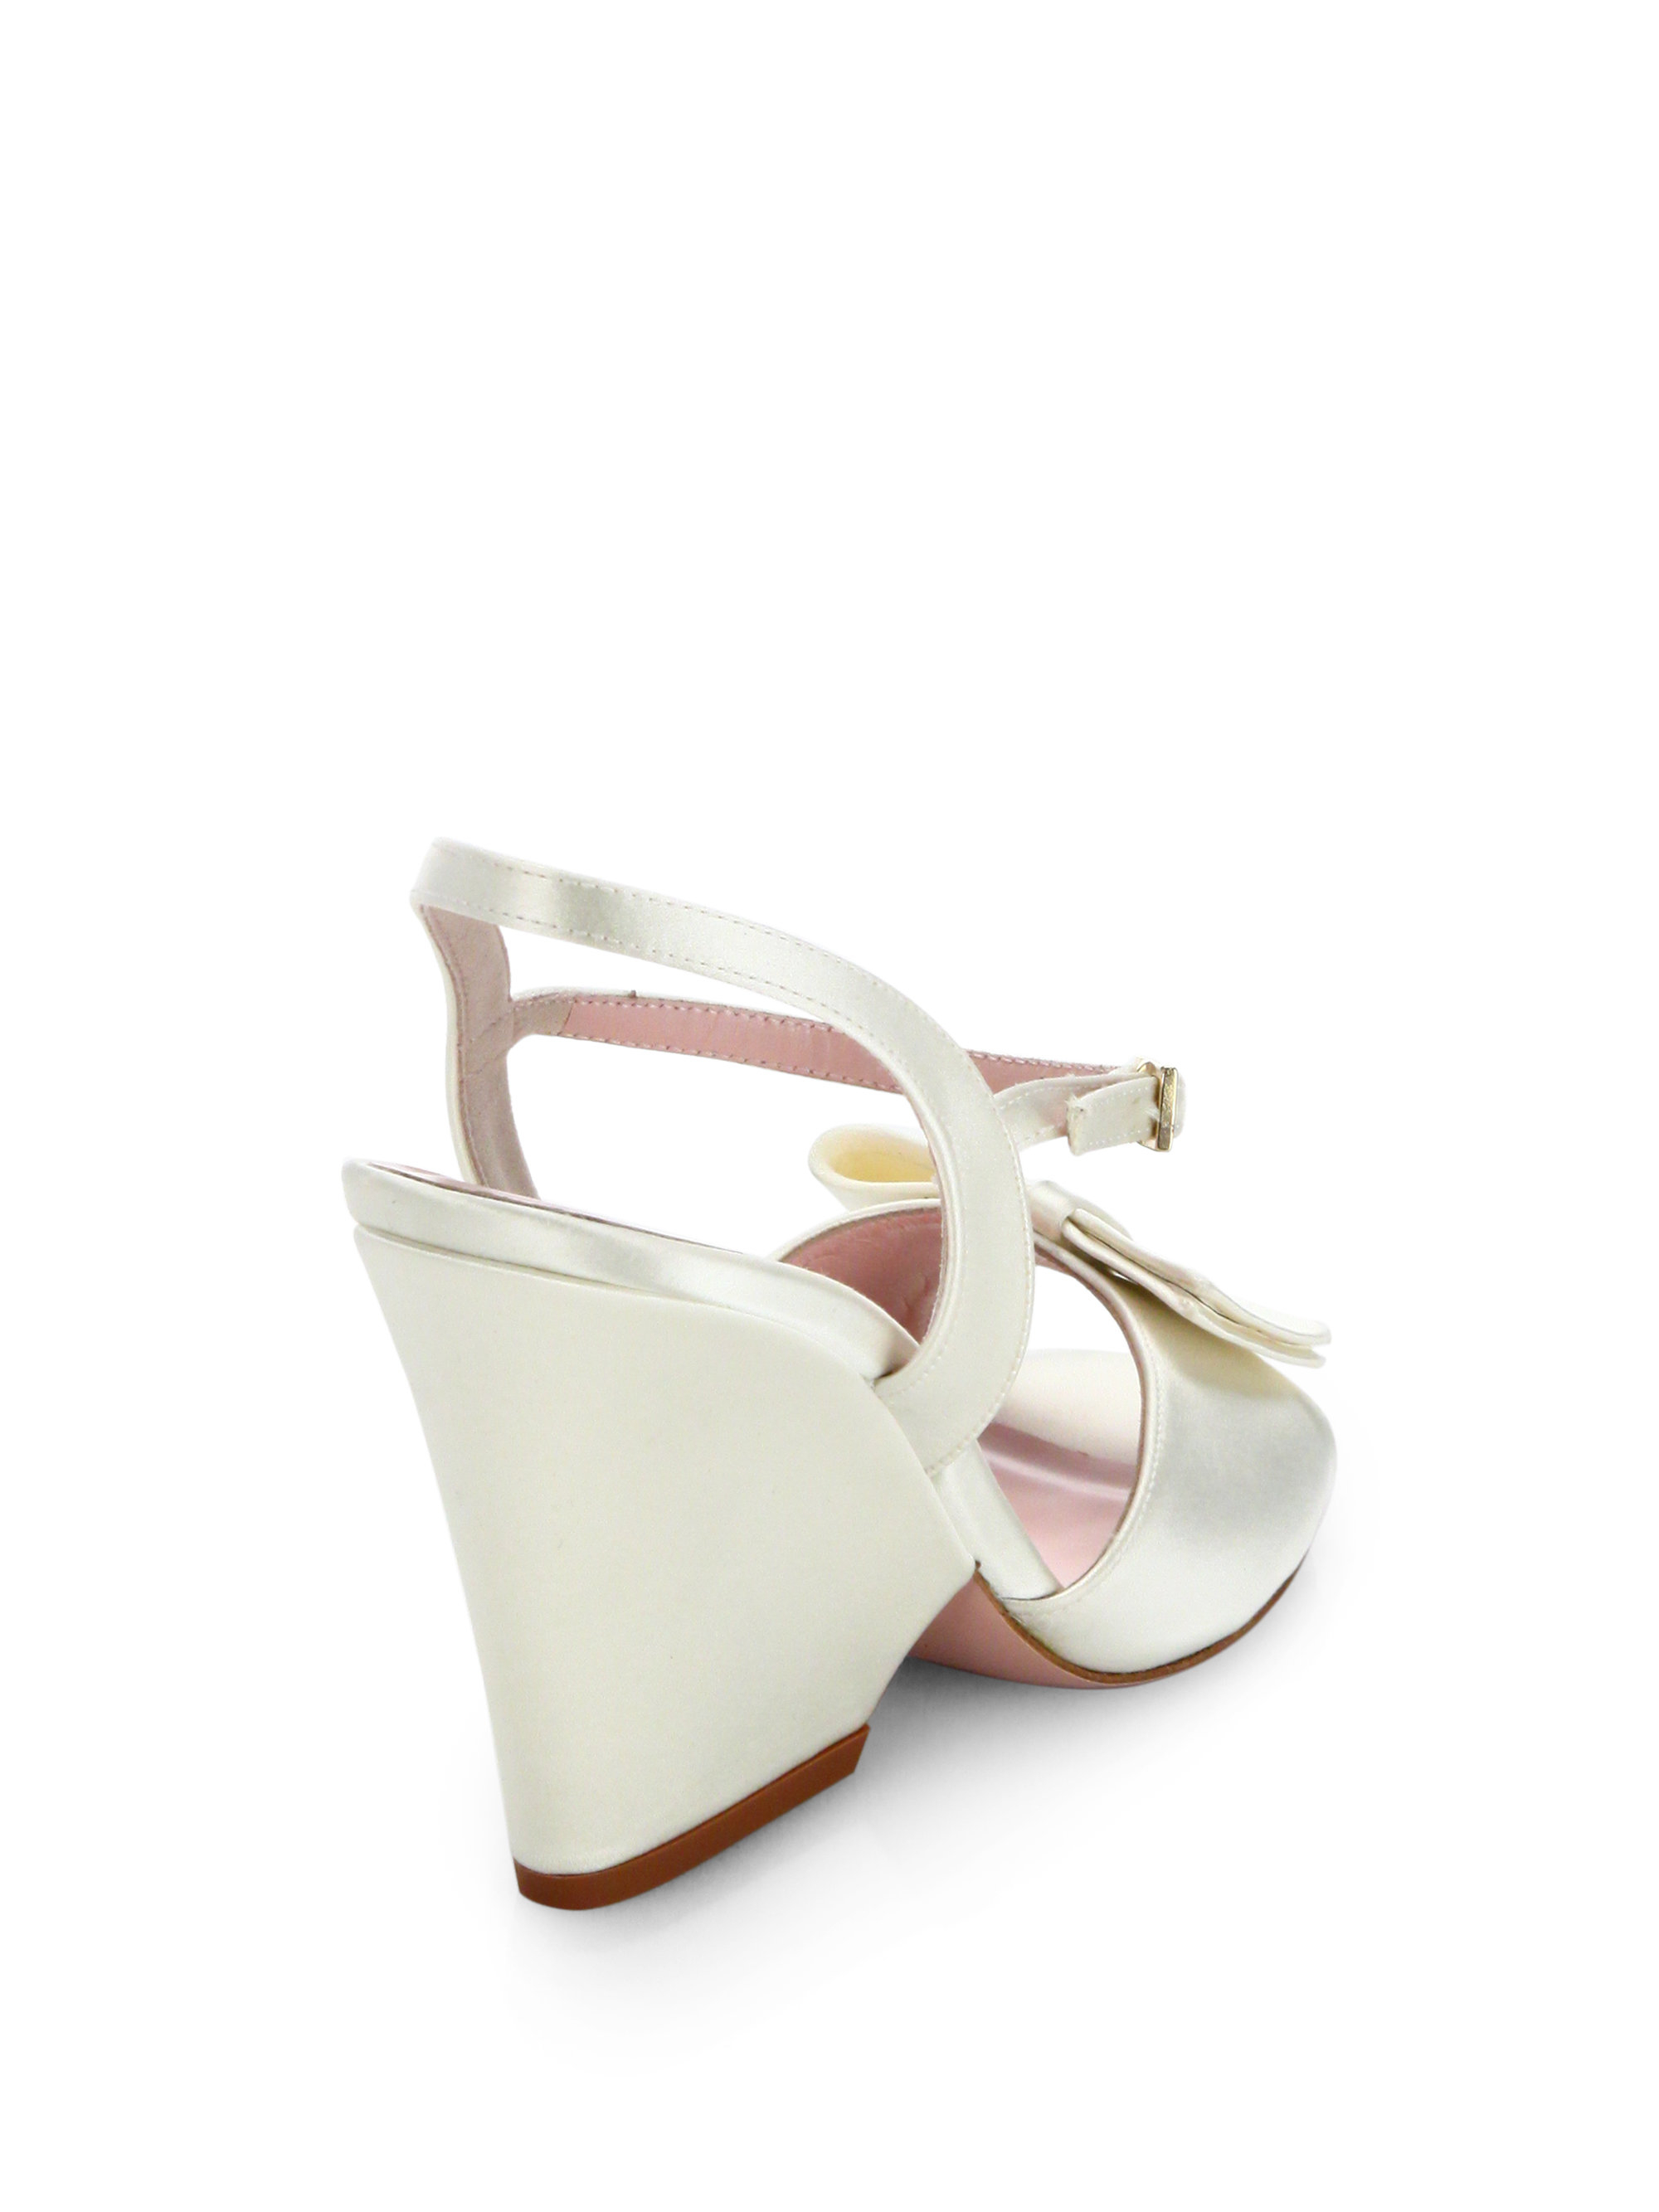 Kate Spade New York Satin Wedge Sandals outlet extremely clearance pick a best ZbLawKccnG